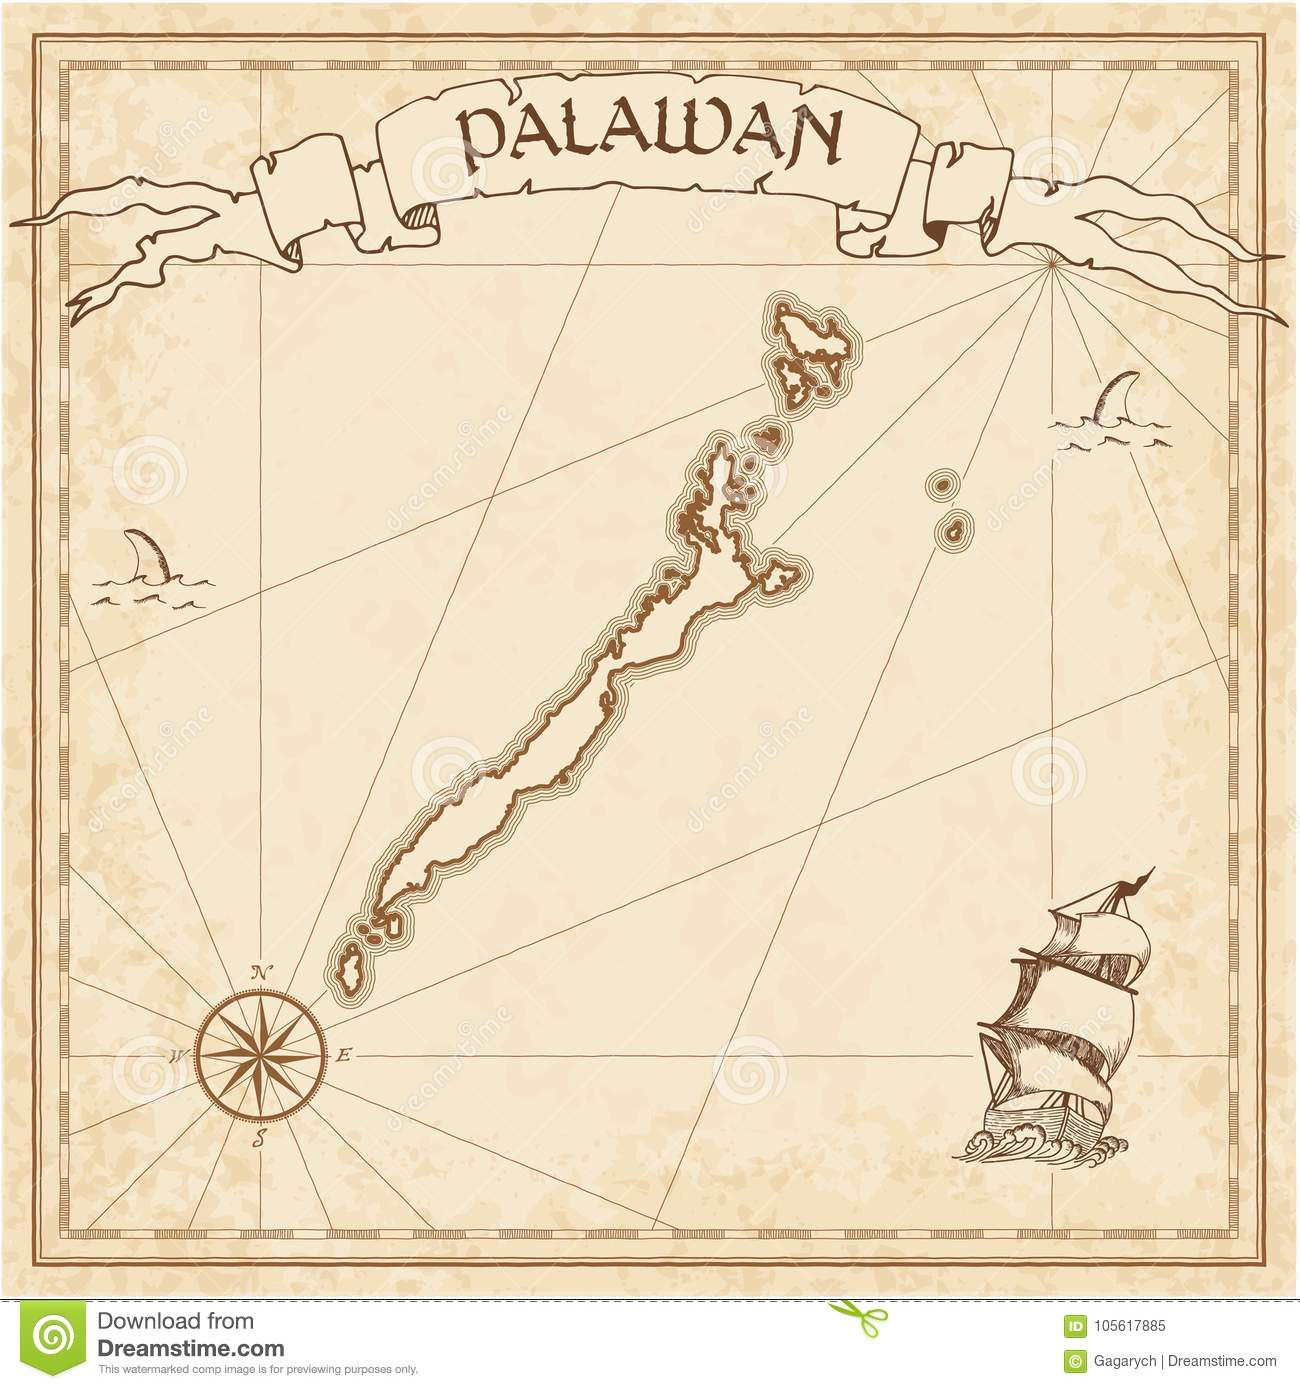 Palawan Old Treasure Map Illustration 105617885 Megapixl